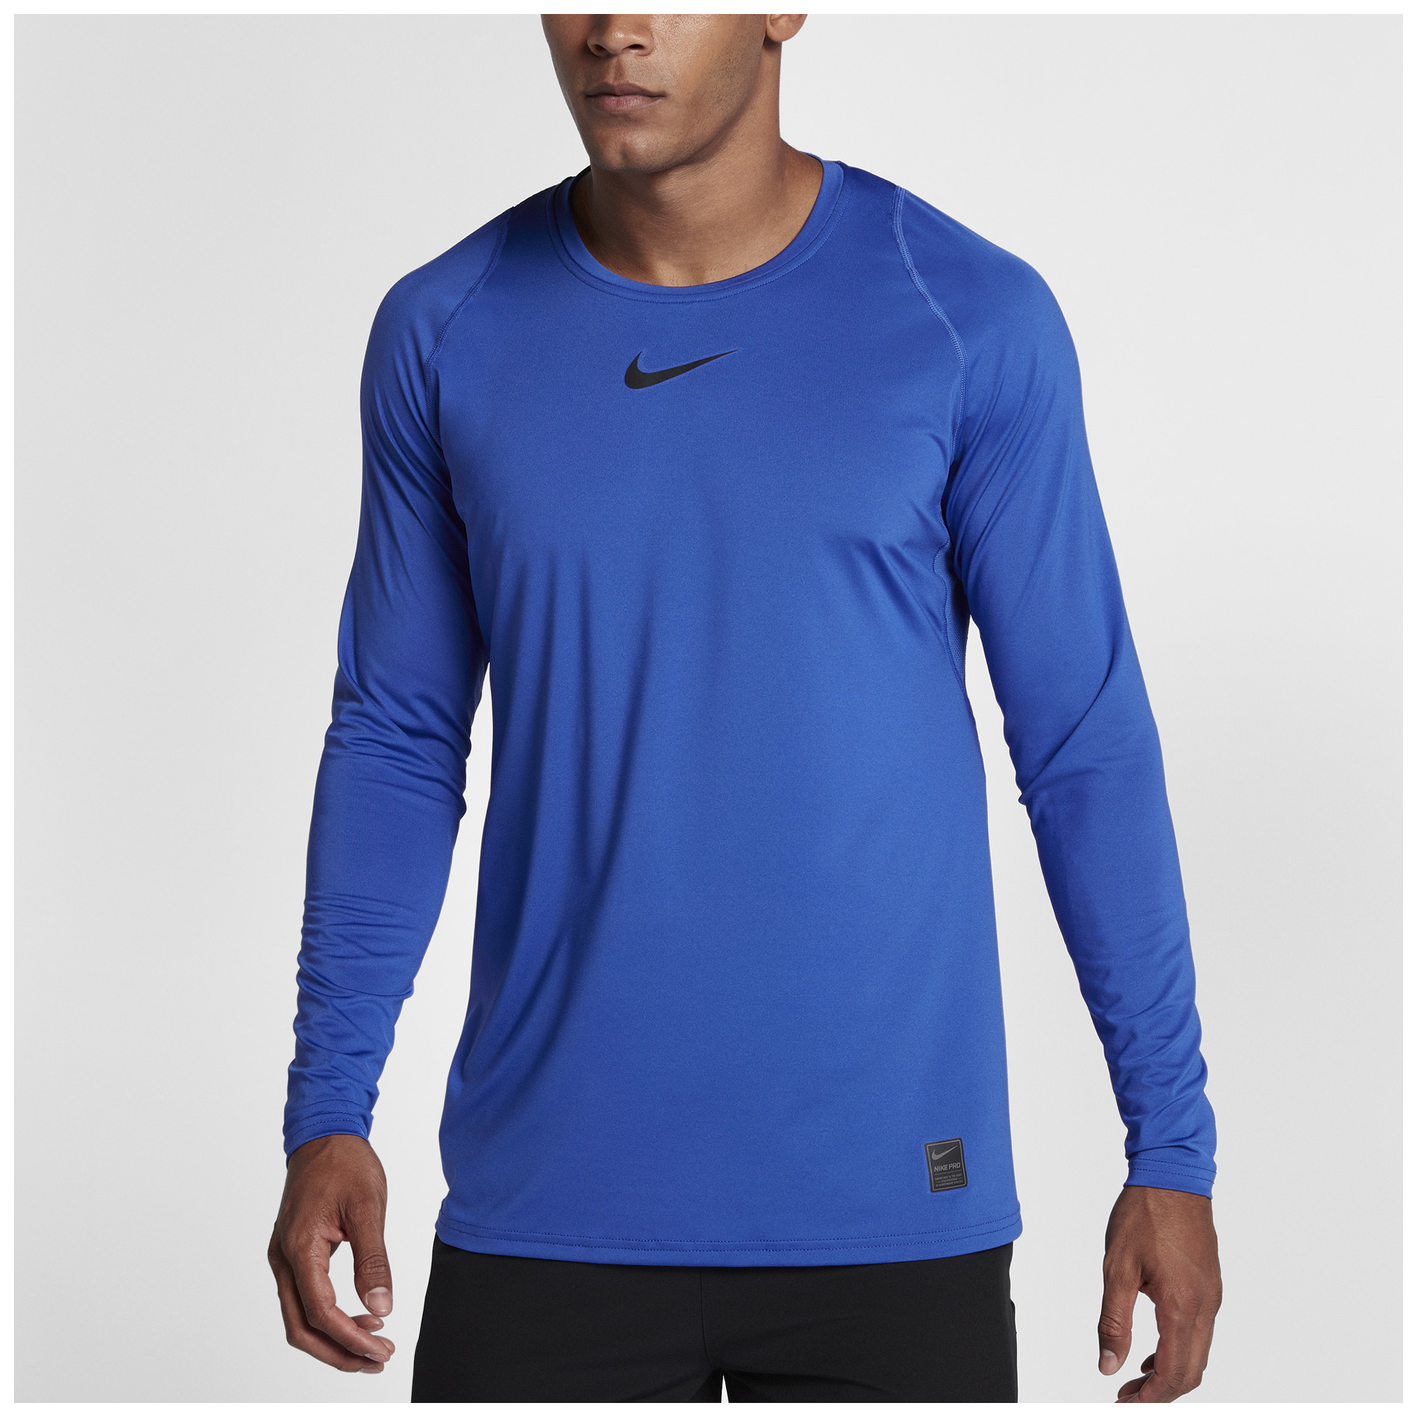 b469b738 Nike Pro Fitted Long Sleeve Top - Men's - Training - Clothing - Game ...